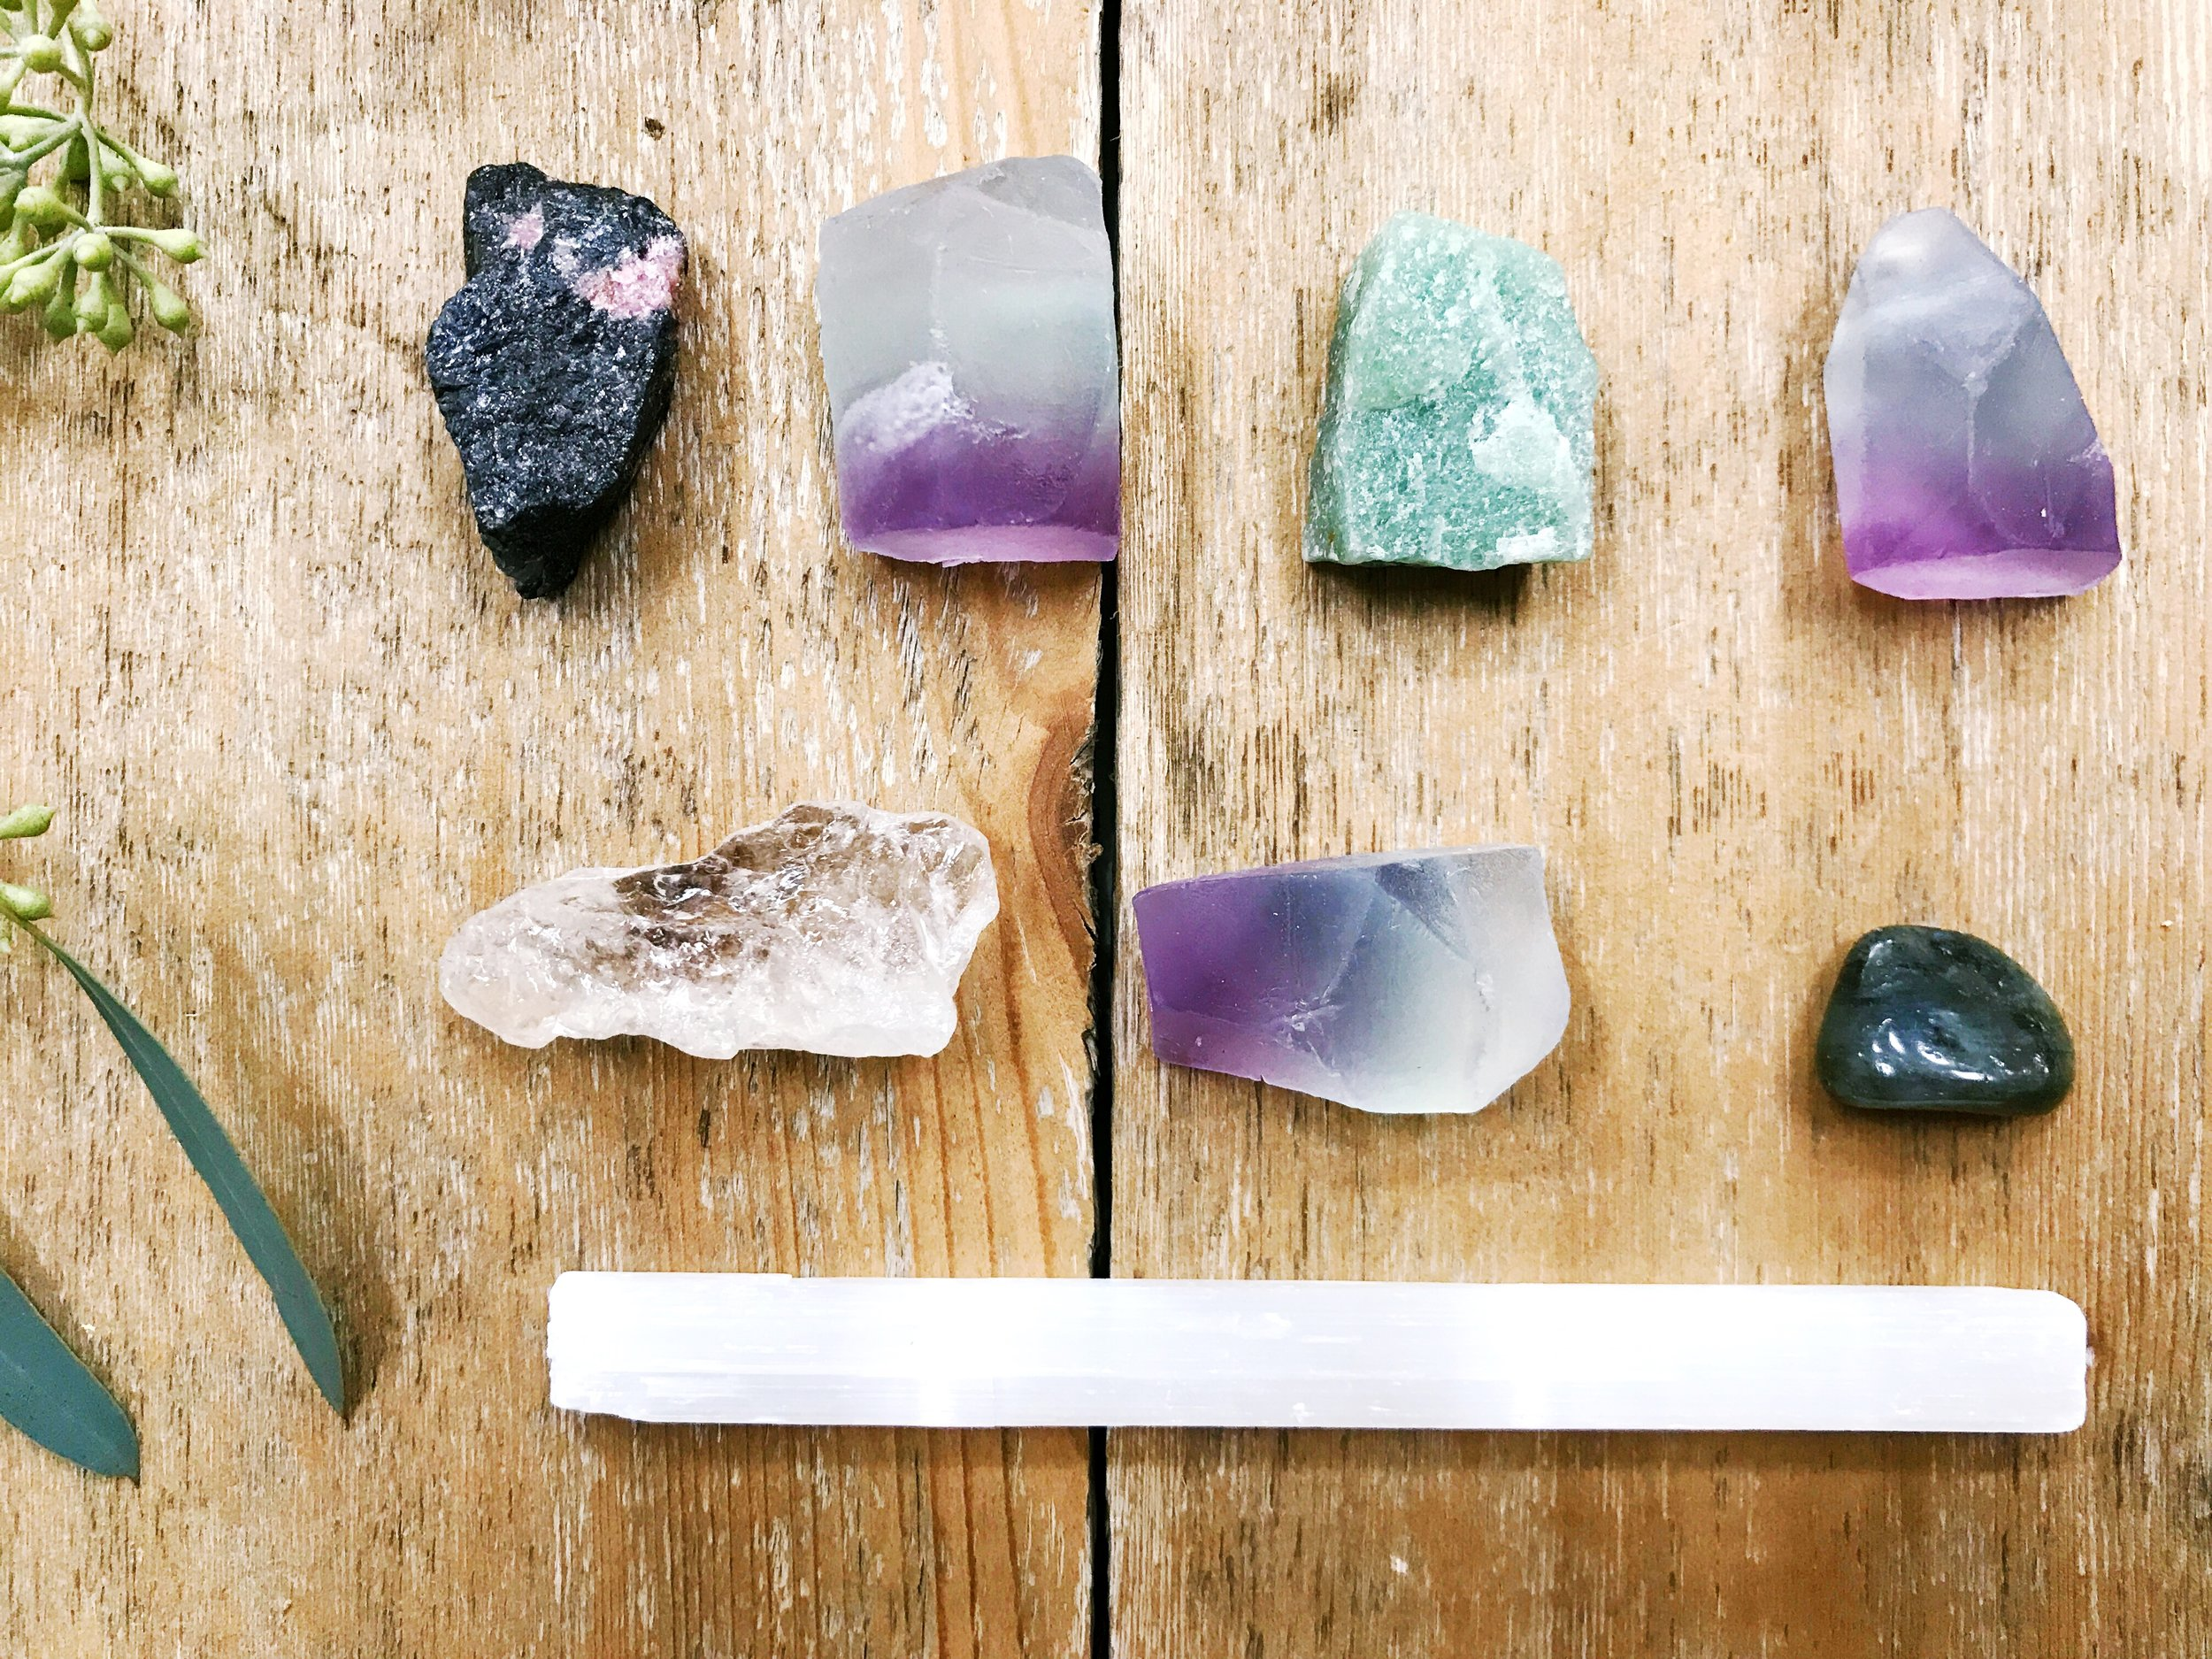 The Paper + Craft Pantry Austin Texas DIY Blog: Geode Soaps